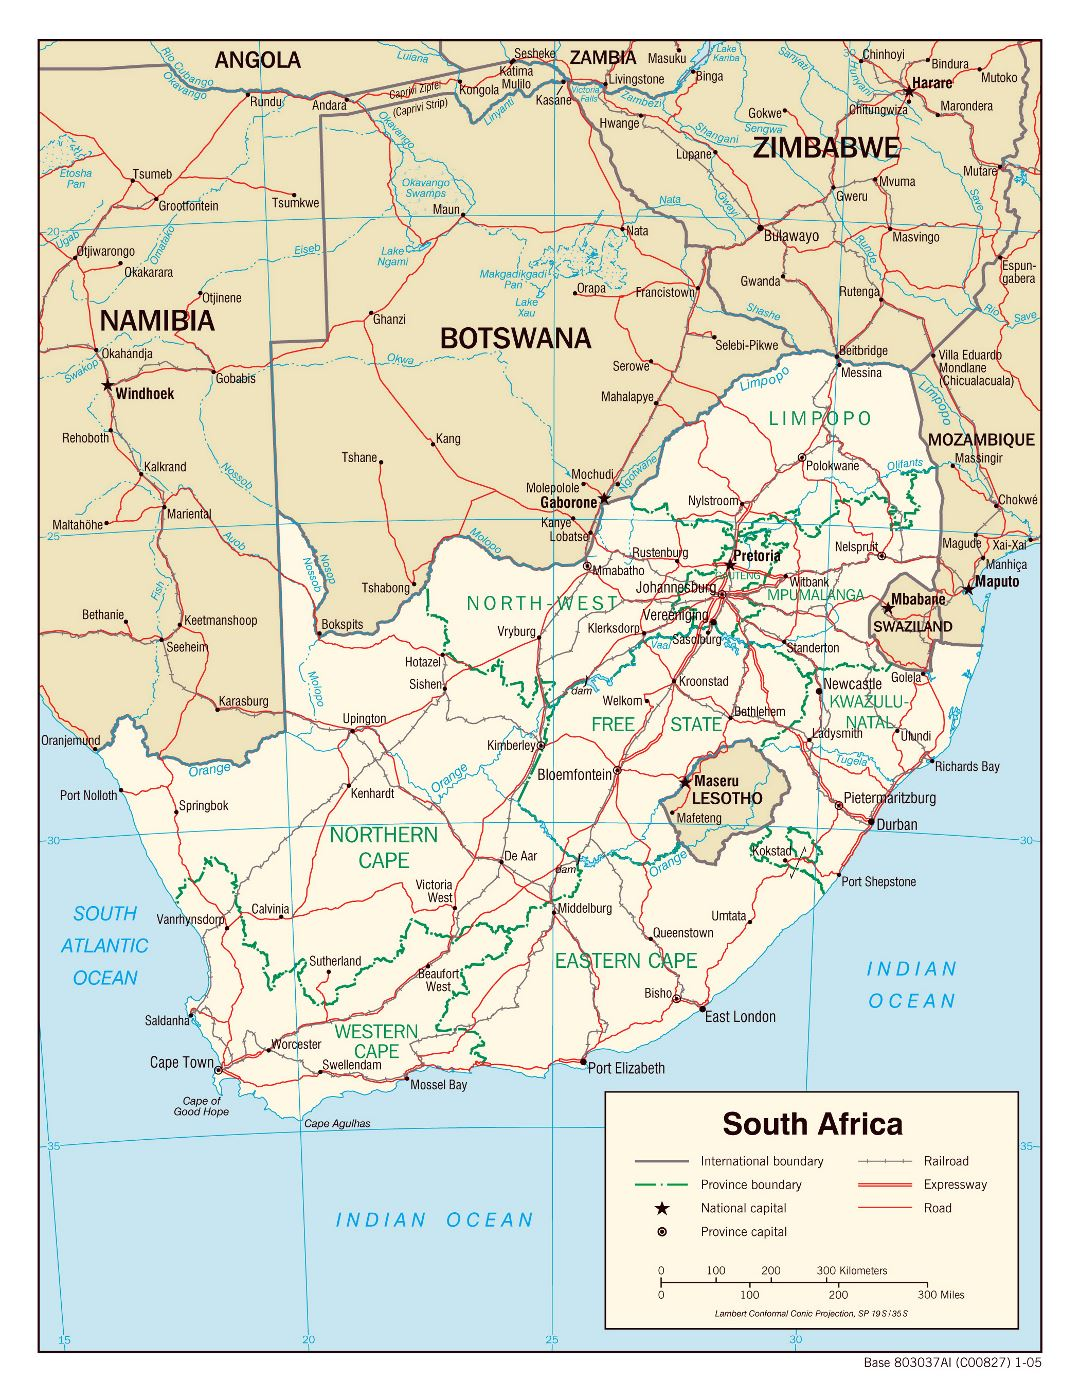 Large political and administrative map of South Africa with roads, railroads and major cities - 2005